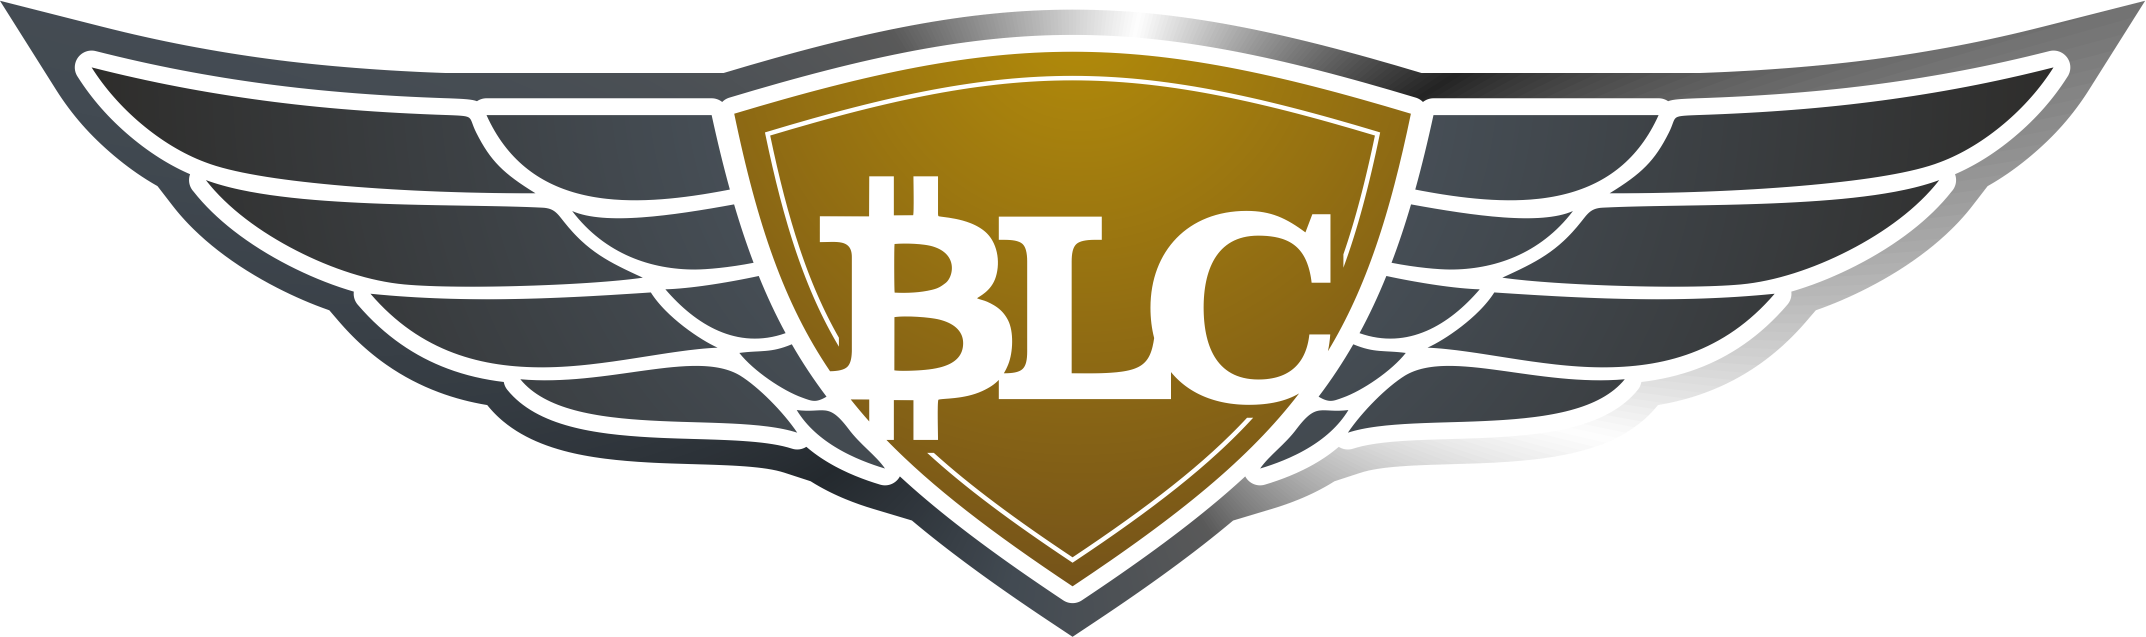 Welcome To Bitcoin Lifestyles Club! – Upgrade – CC